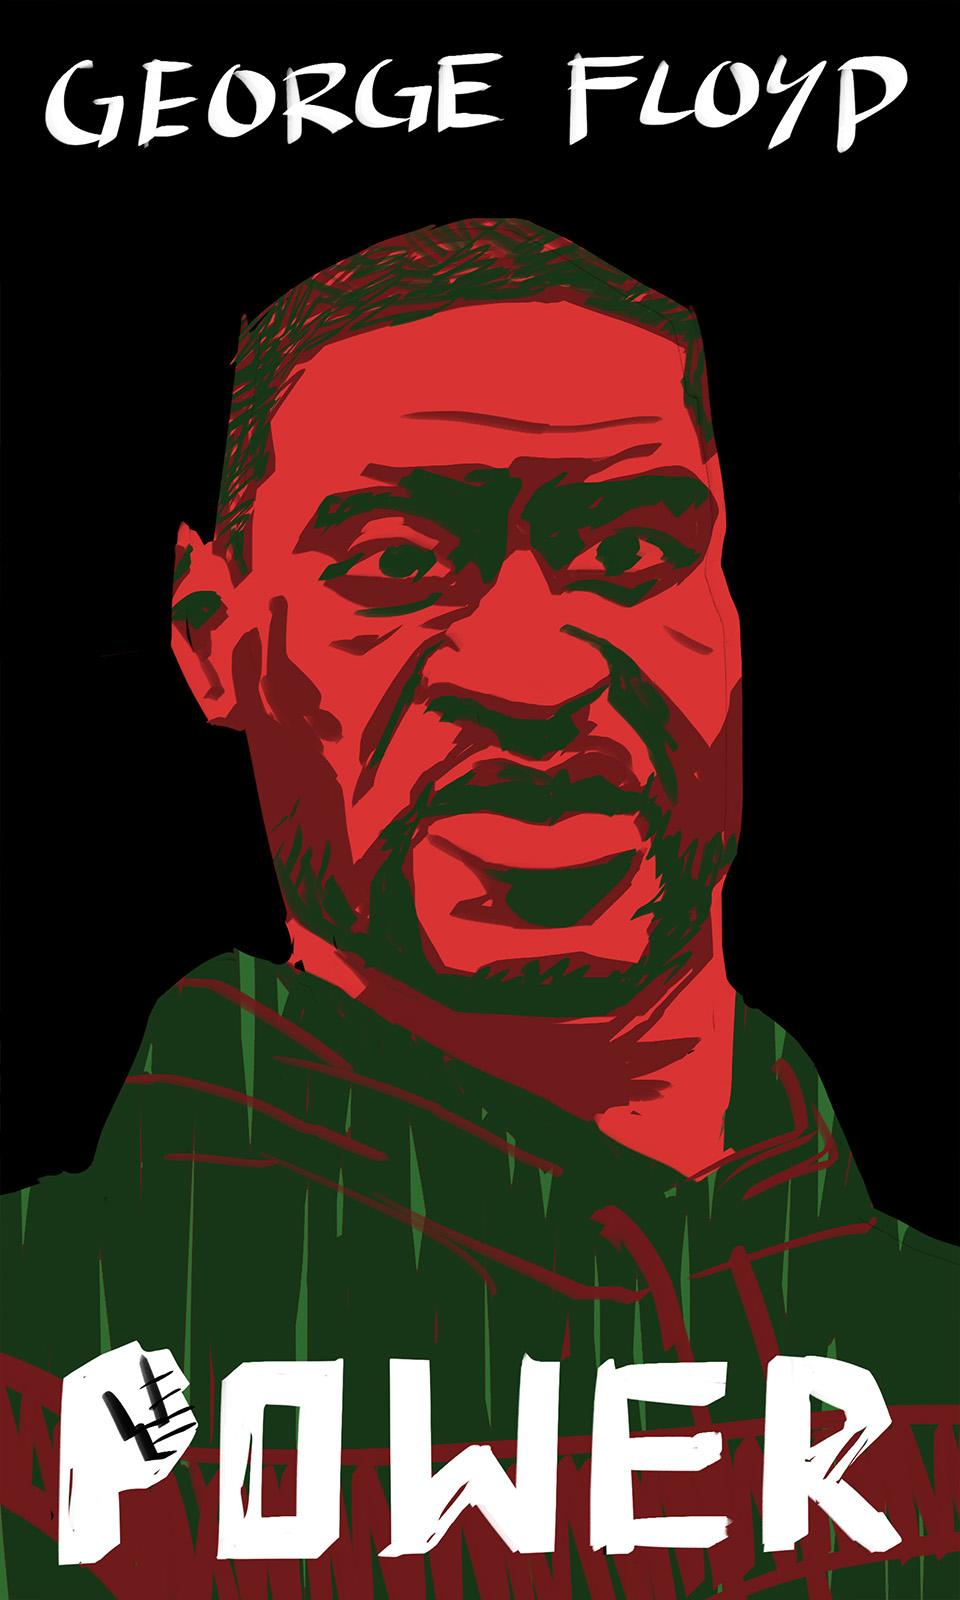 Third portrait of the Rest In Power triptych. George Floyd is rendered in red and green on a black background. Top text is his name, bottom text reads 'Power' in a hand drawn typeface. The 'P' resembles the black power fist.